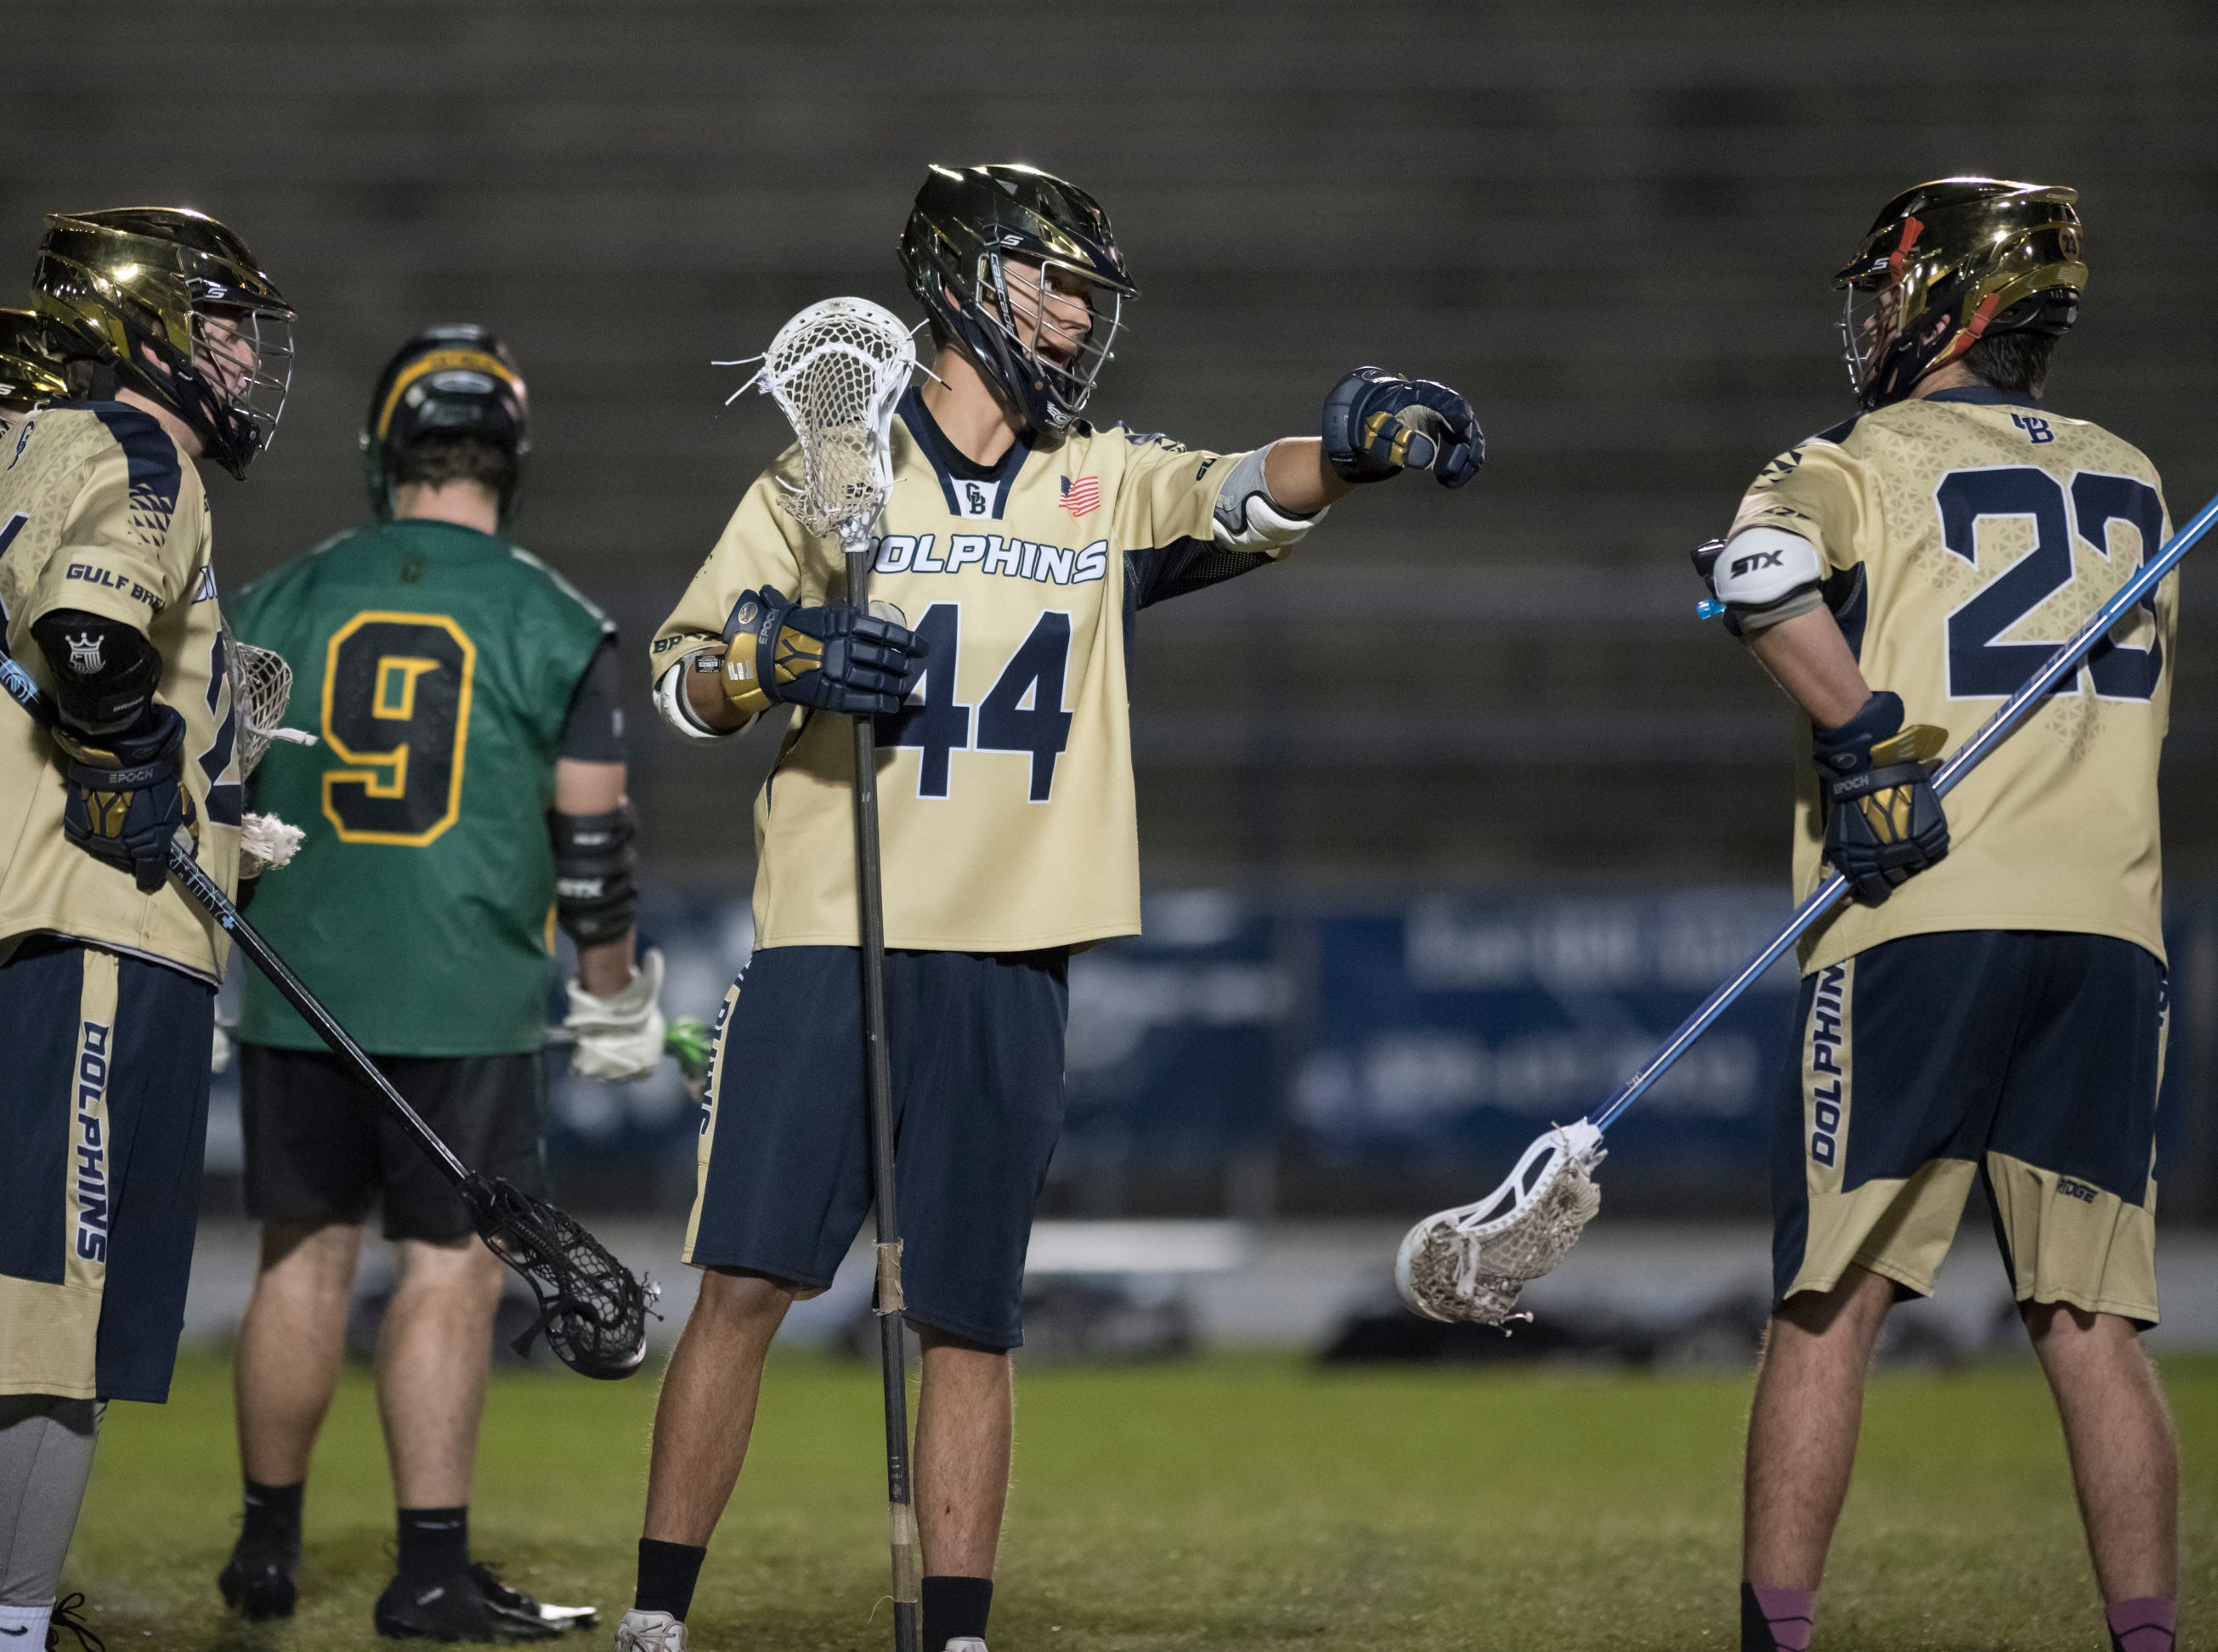 Eli Ryan (44) and teammates talk strategy after the Crusaders just took a 5-3 lead during the Catholic vs. Gulf Breeze boys lacrosse game at Gulf Breeze High School on Wednesday, March 6, 2019.